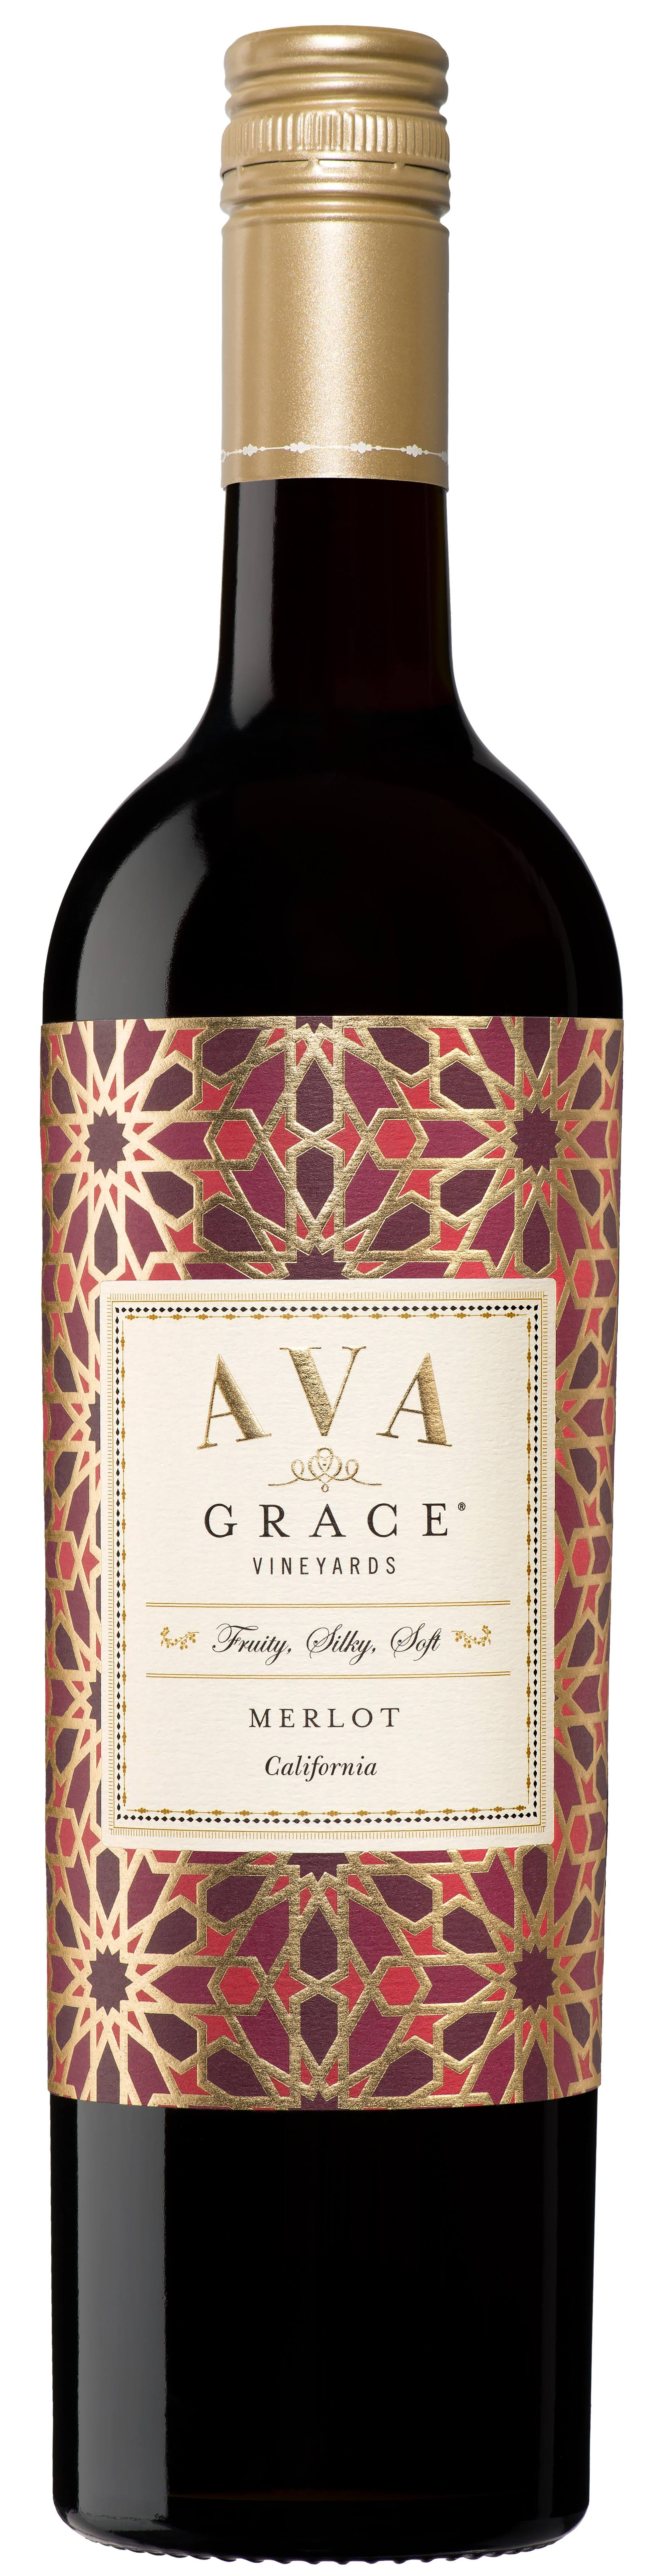 Ava Grace Vineyards Merlot, California, 2015 - 750 ml